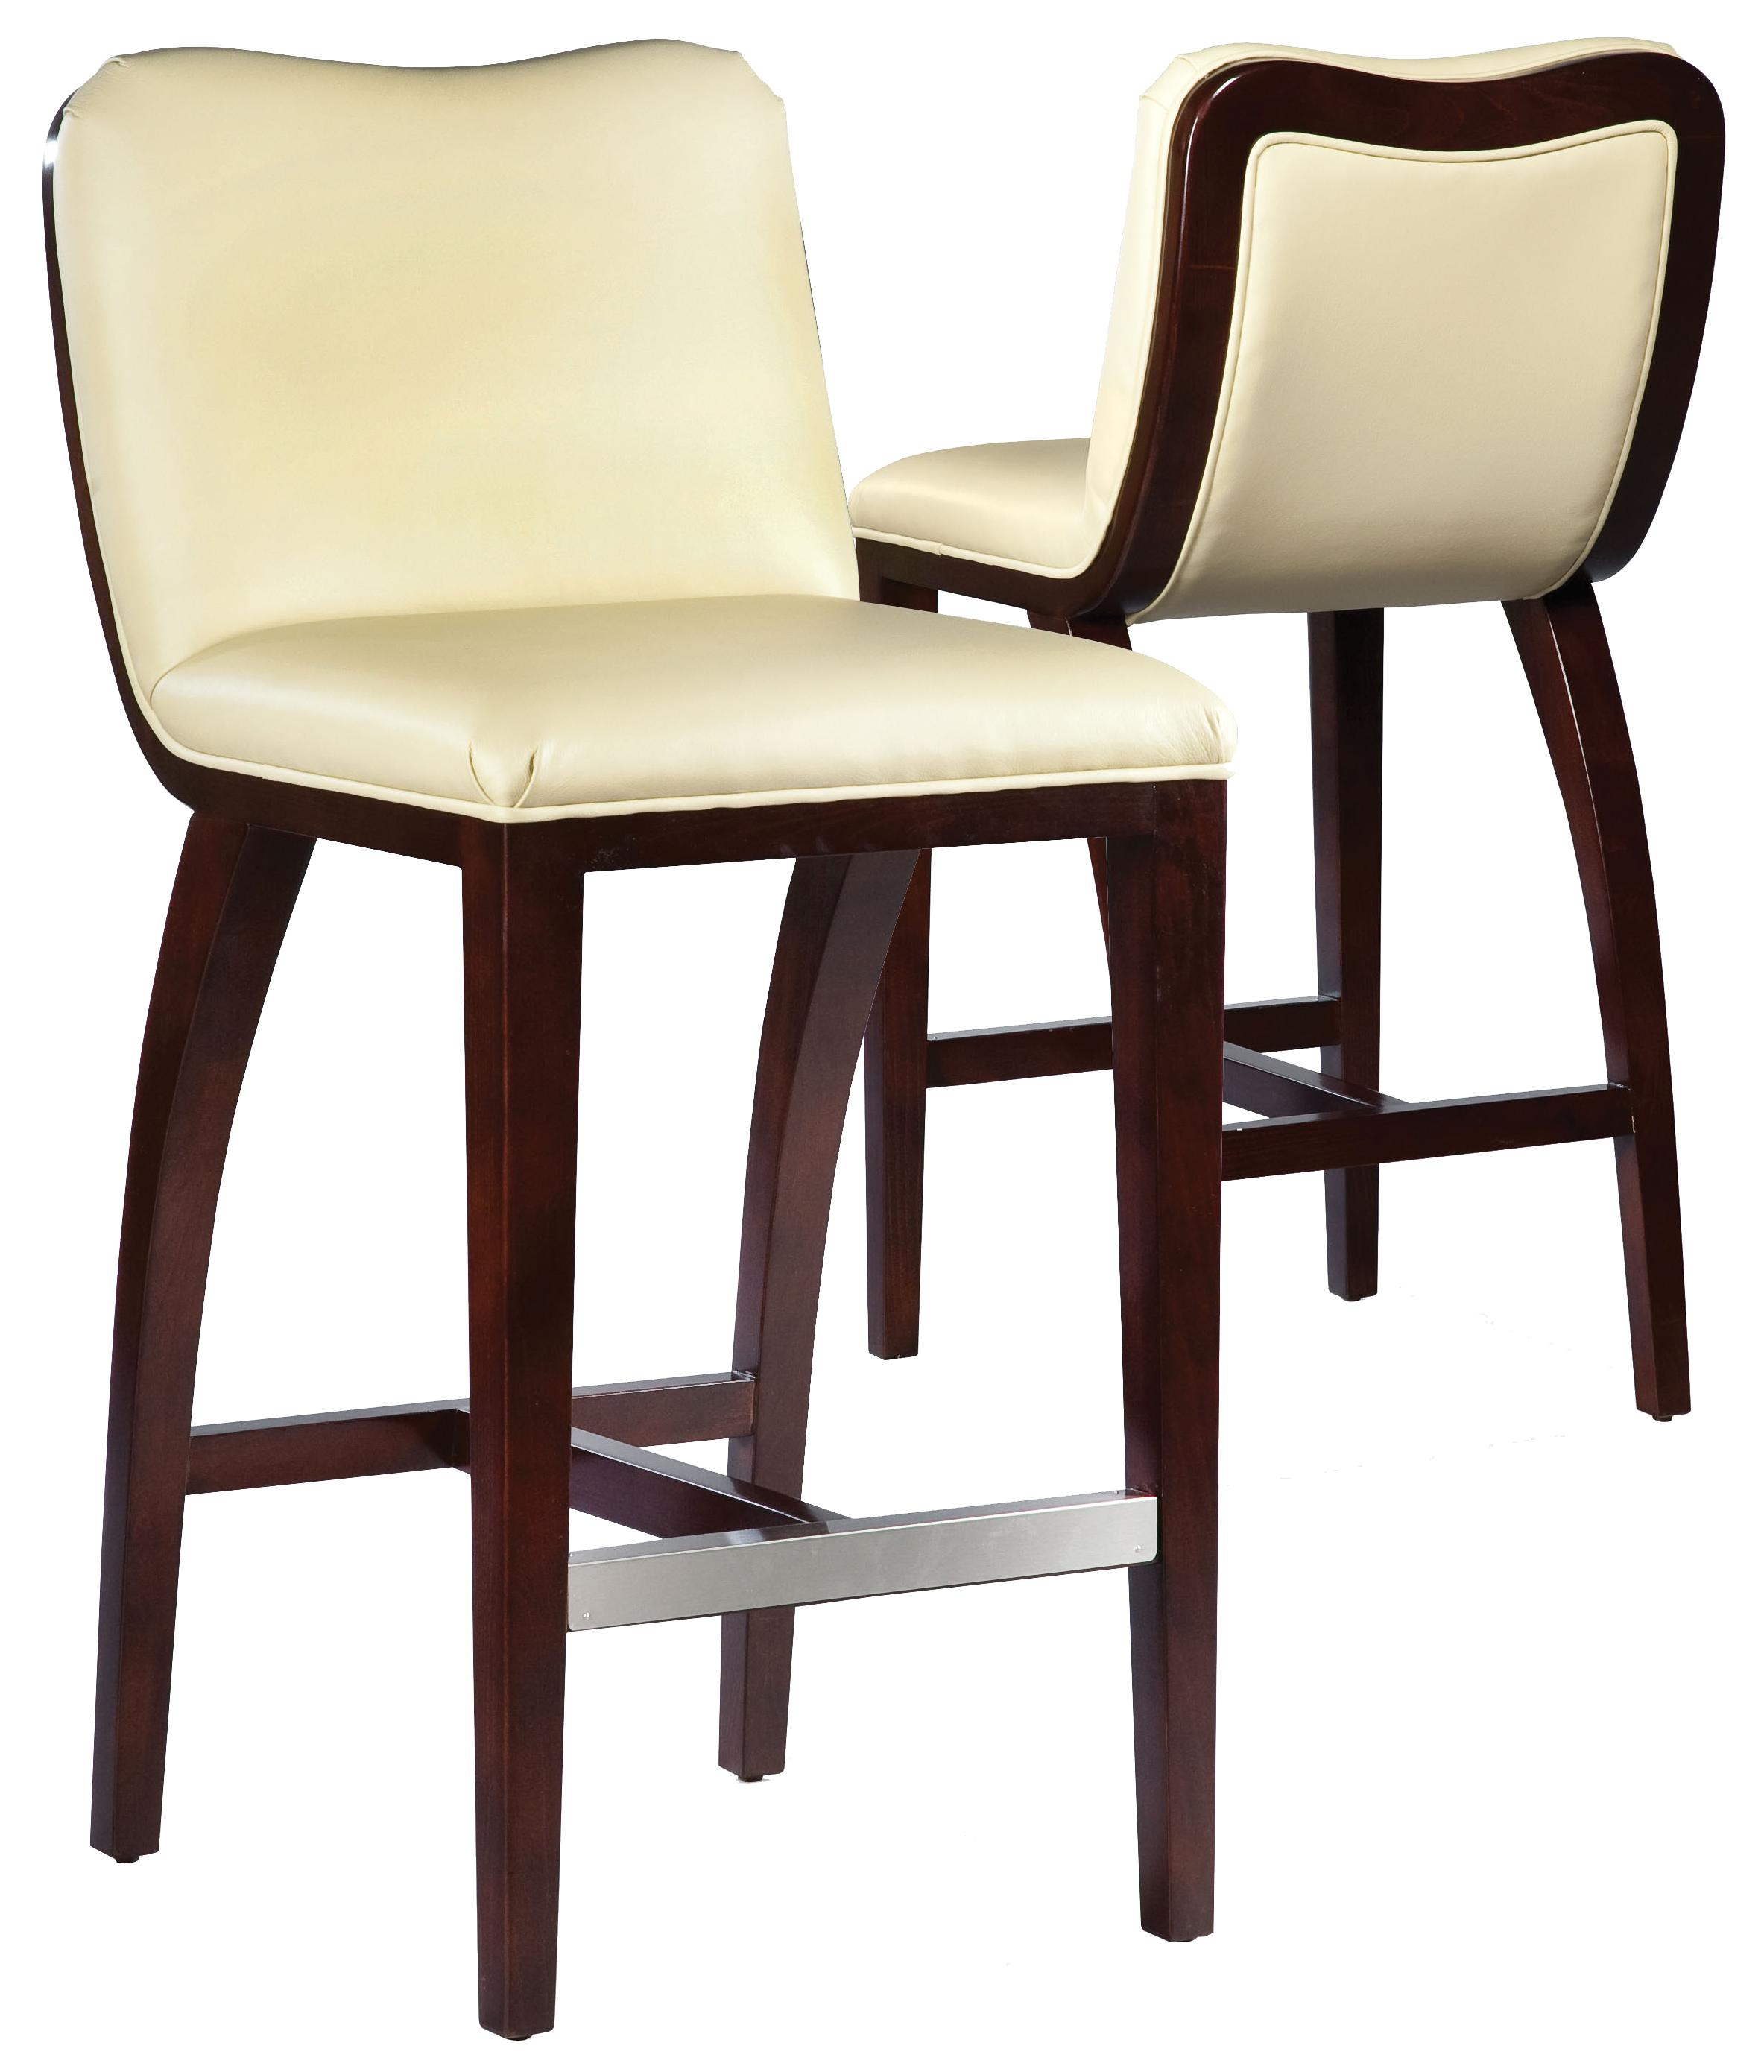 Fairfield Barstools High End Bar Stool With Decorative Exposed Wood Curve Back Jacksonville